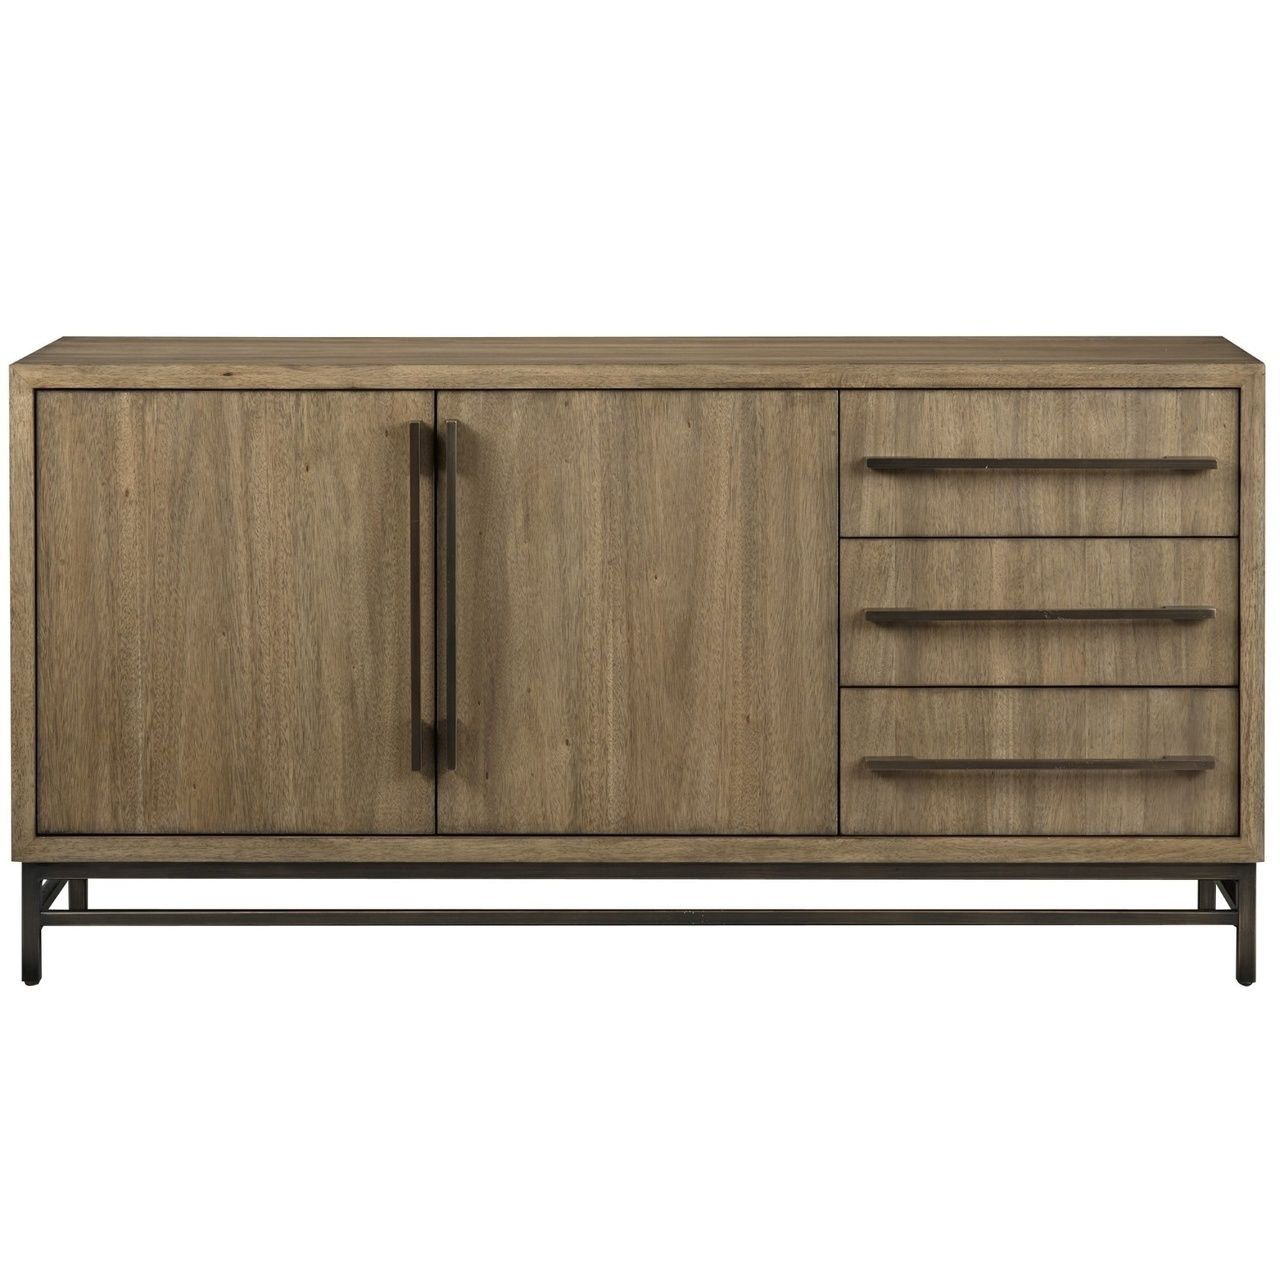 "Roland Bronze Metal + Wood Buffet Sideboard 64"" In 2019 Regarding Sideboards By Foundry Select (View 24 of 30)"